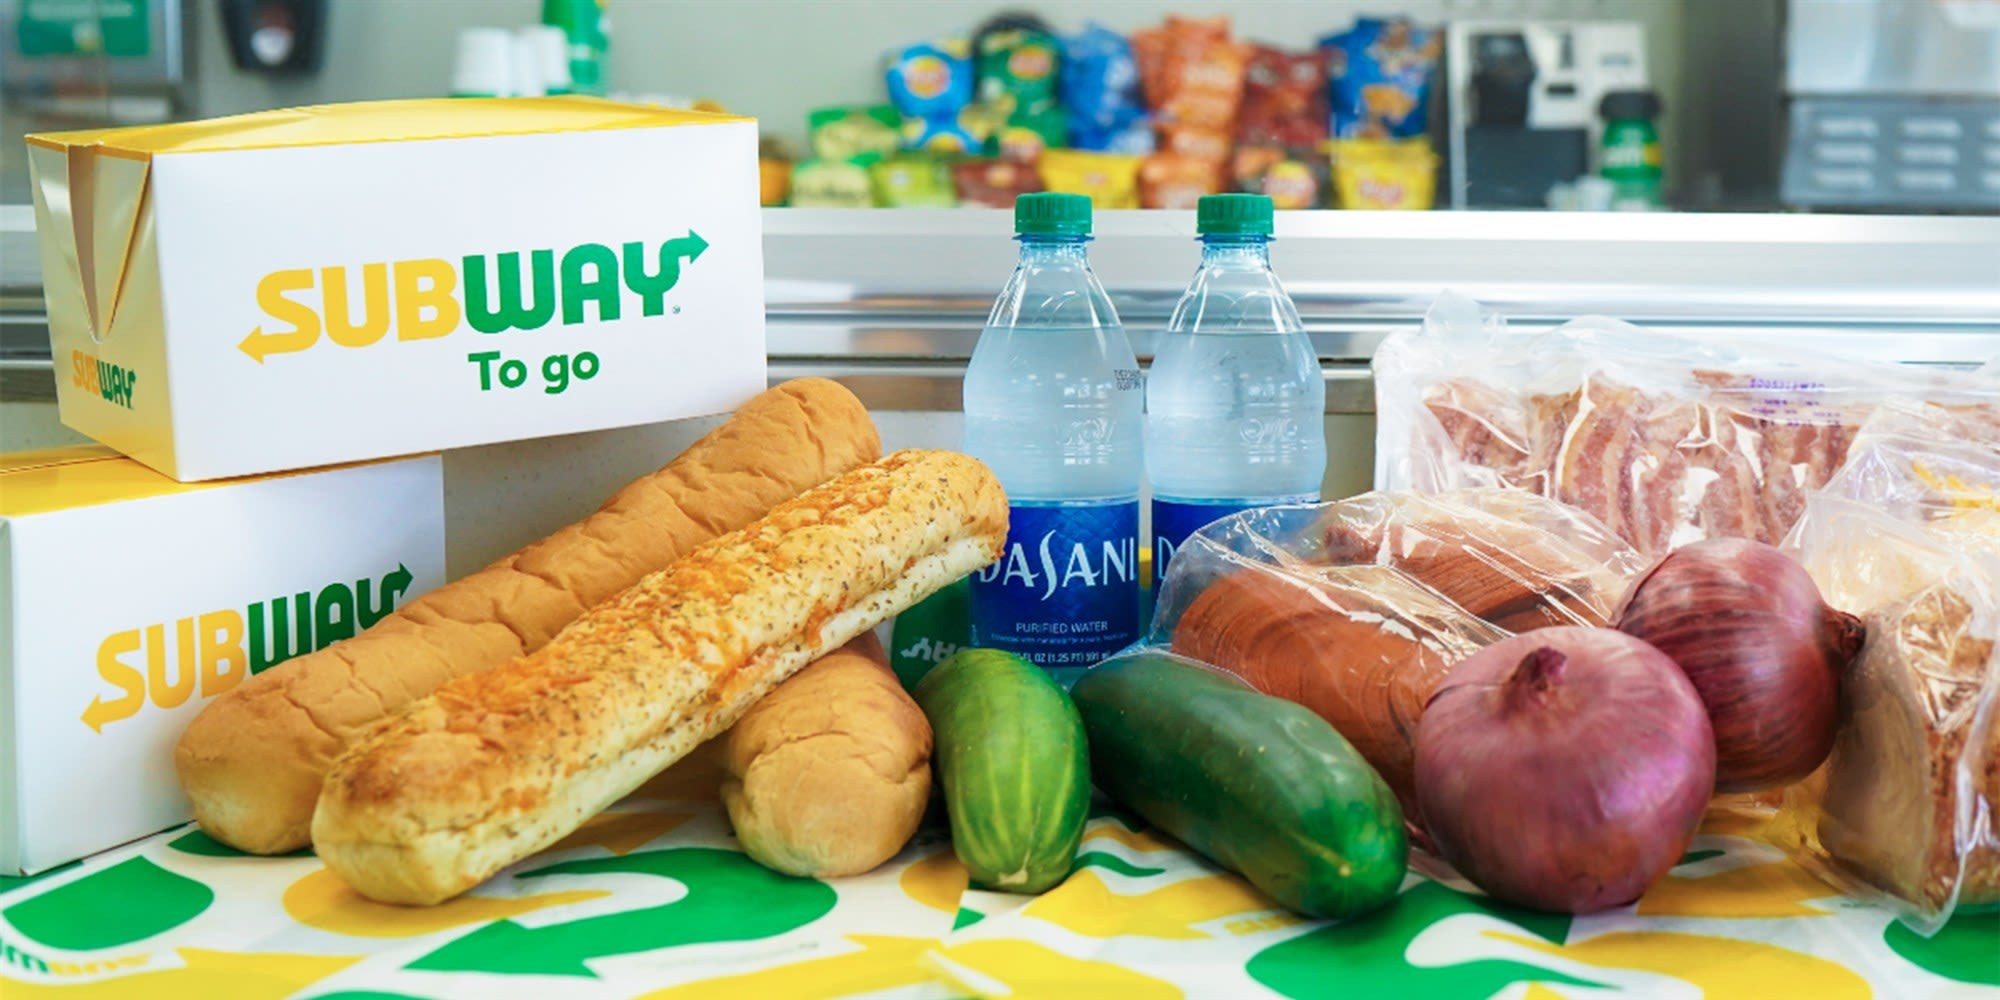 Subway Grocery